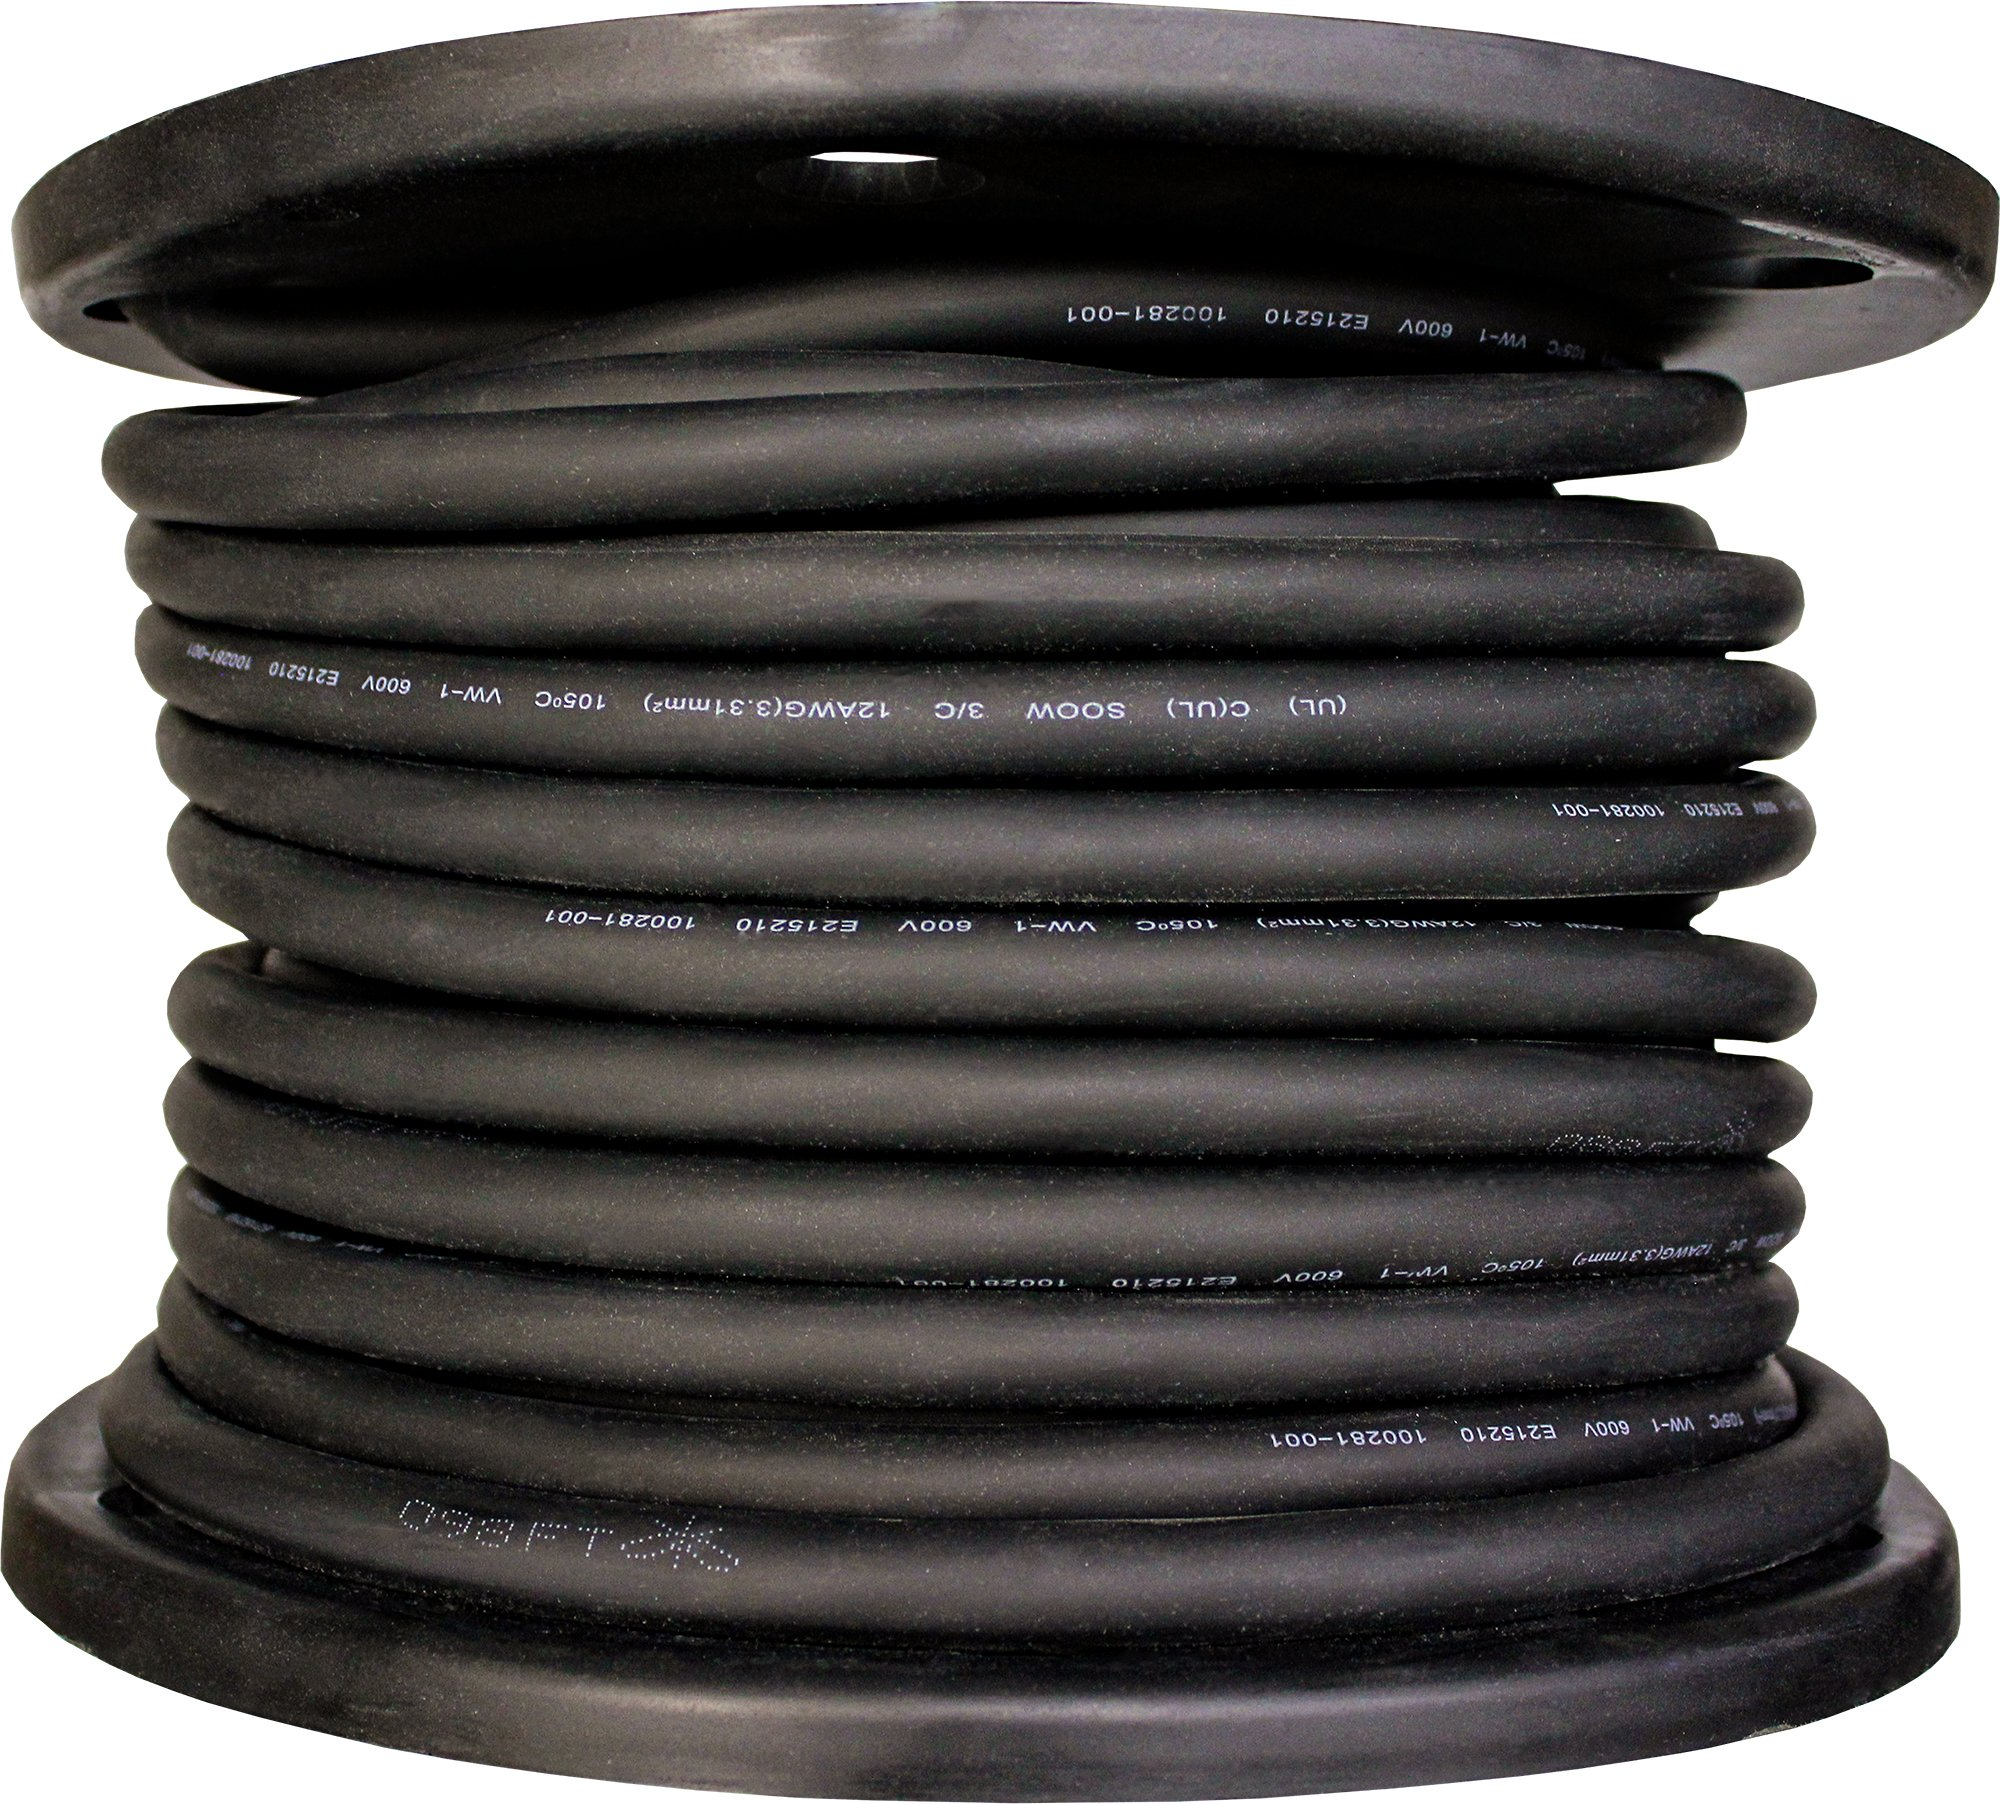 Cerrowire 283-3804E 150-Feet 10/4 SOOW Rubber Flexible Extra Heavy Duty Cord, Black by Cerrowire